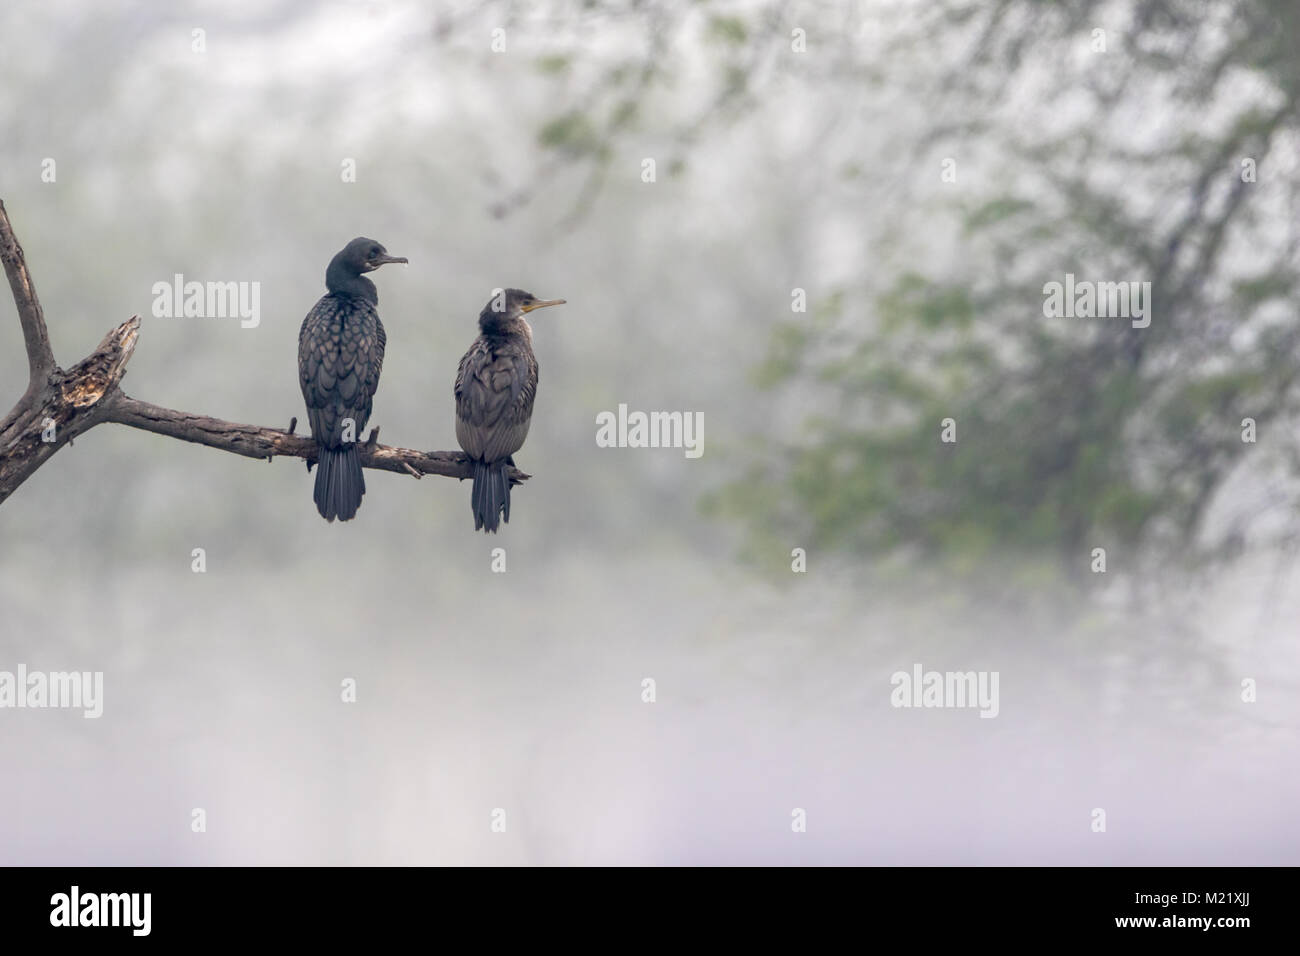 The great cormorant (Phalacrocorax carbo) pair resting in mist at Bharatpur Bird Sanctuary in Rajasthan, India - Stock Image